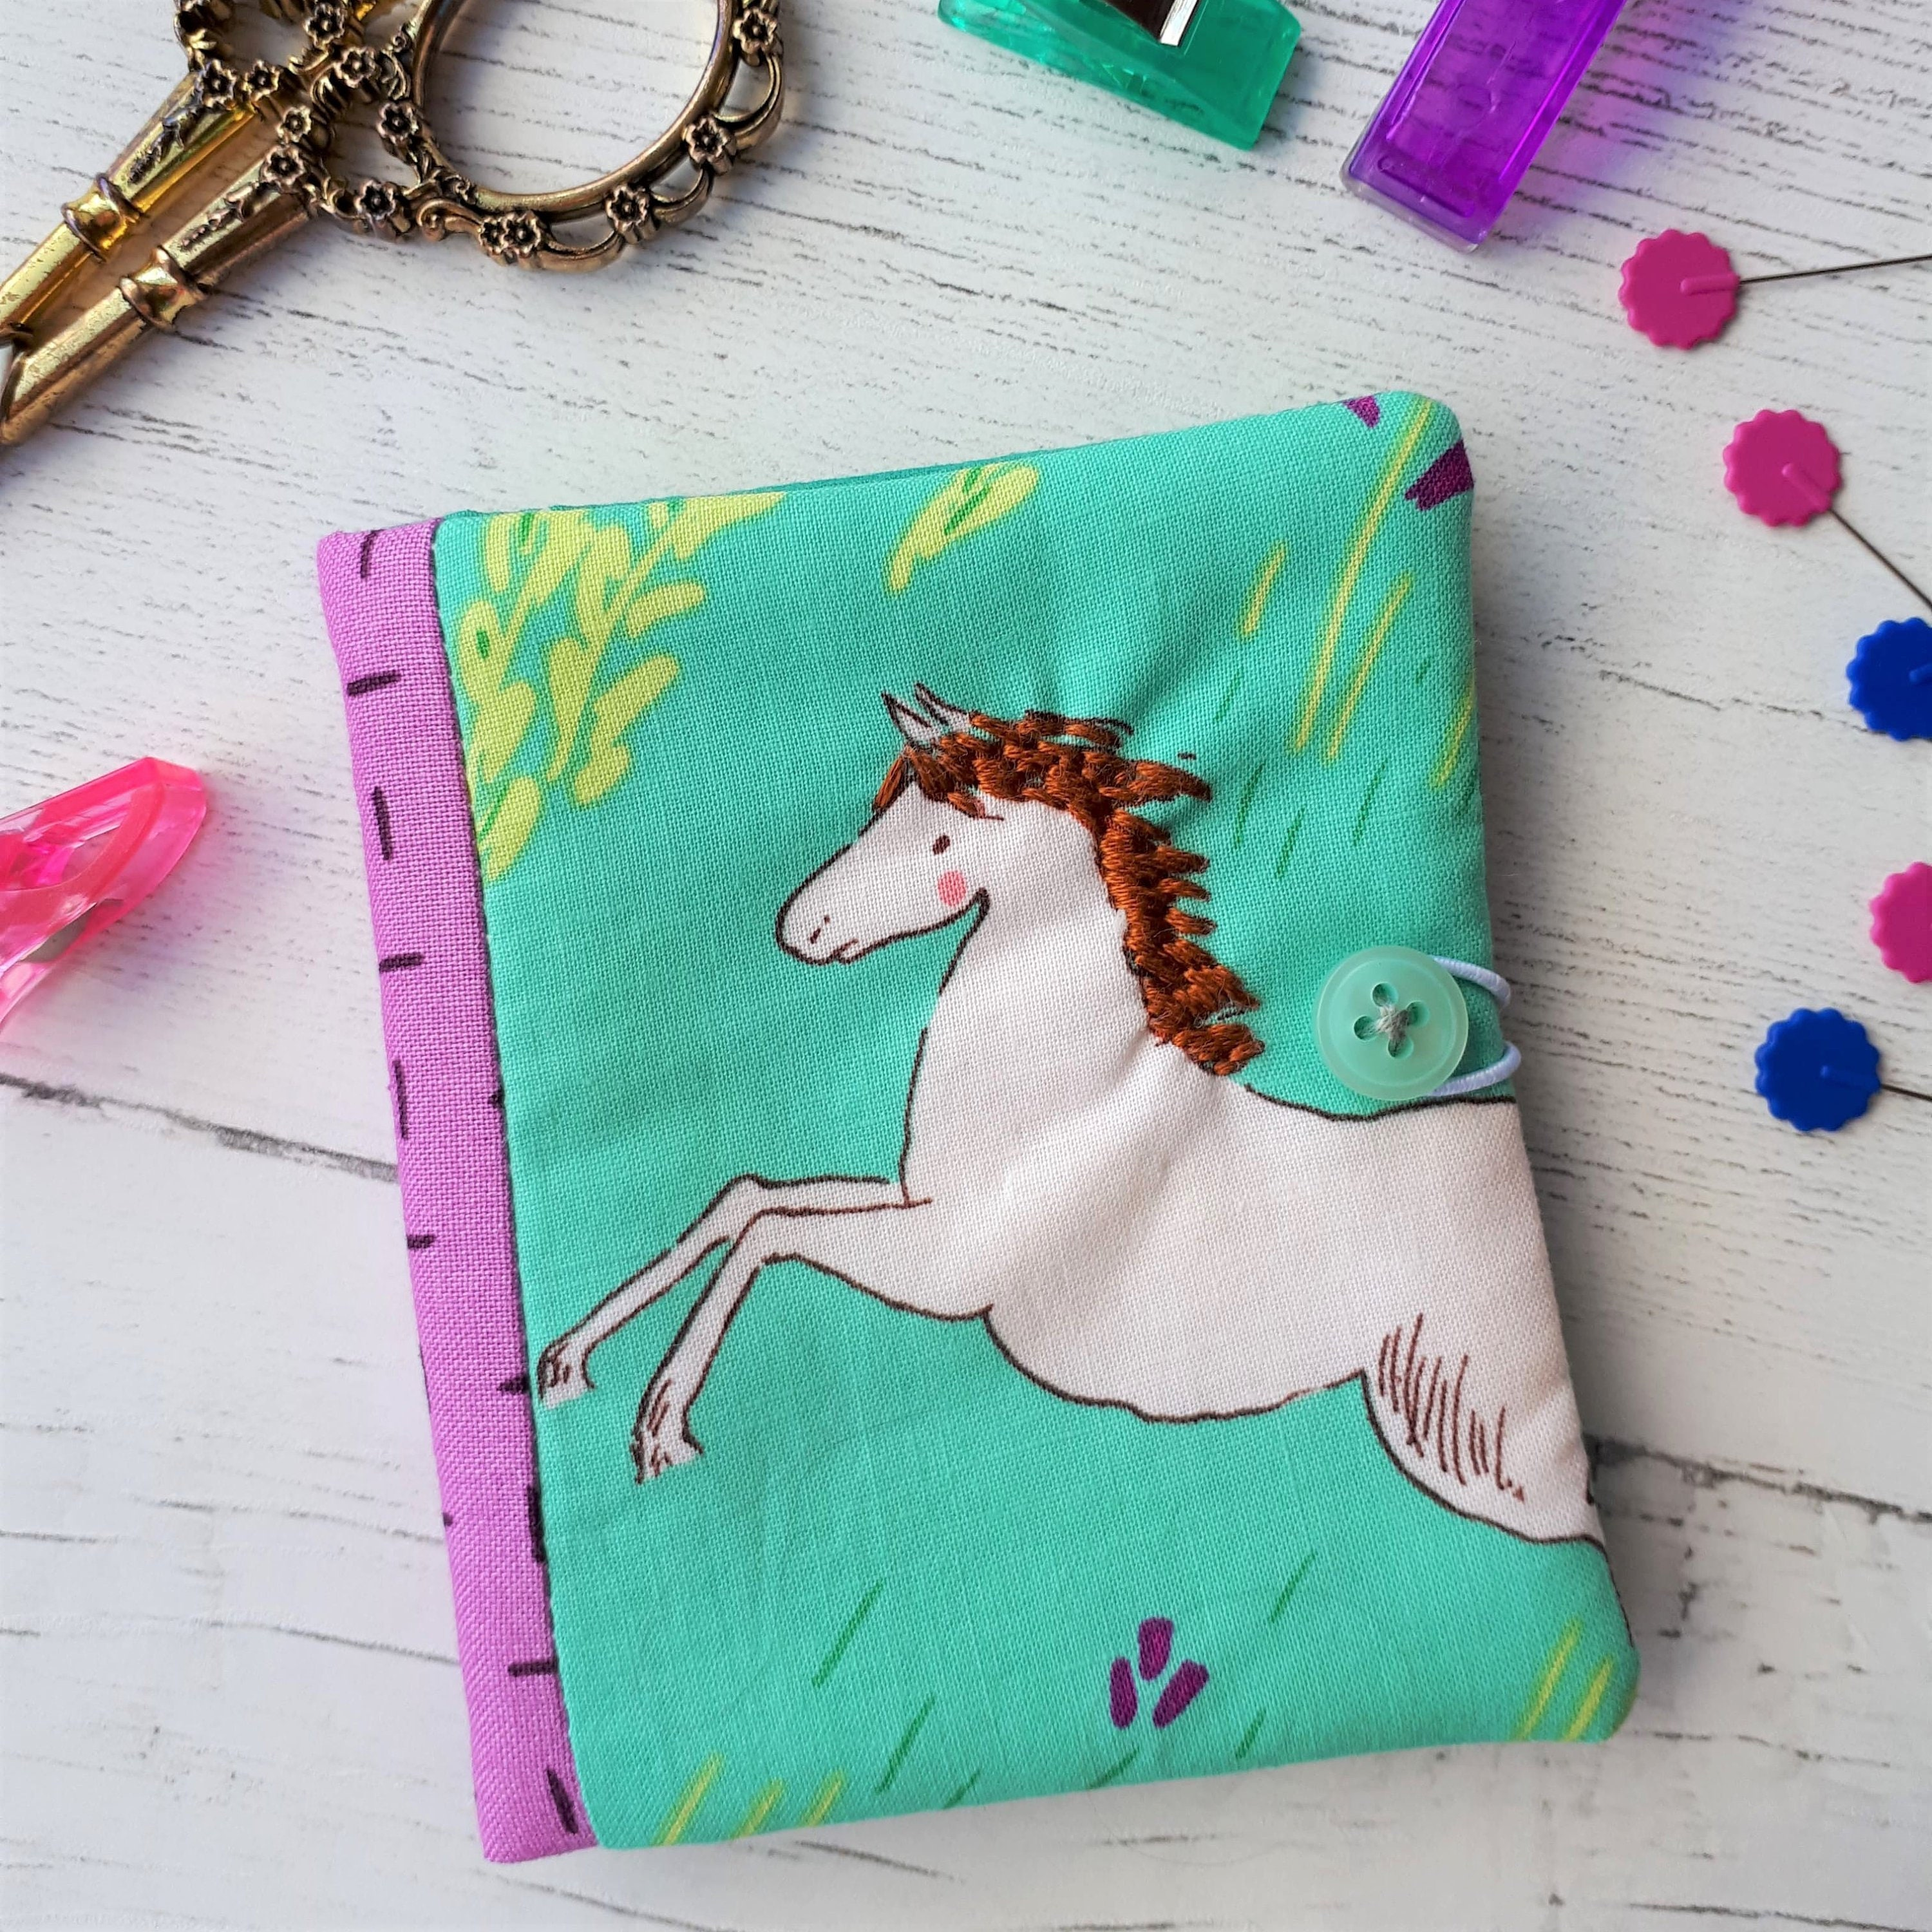 Carnet à la main - - - sauvage cheval/Wee Wander/Sarah Jane/violet/rose/turquoise - couture/broderie. 265f2d